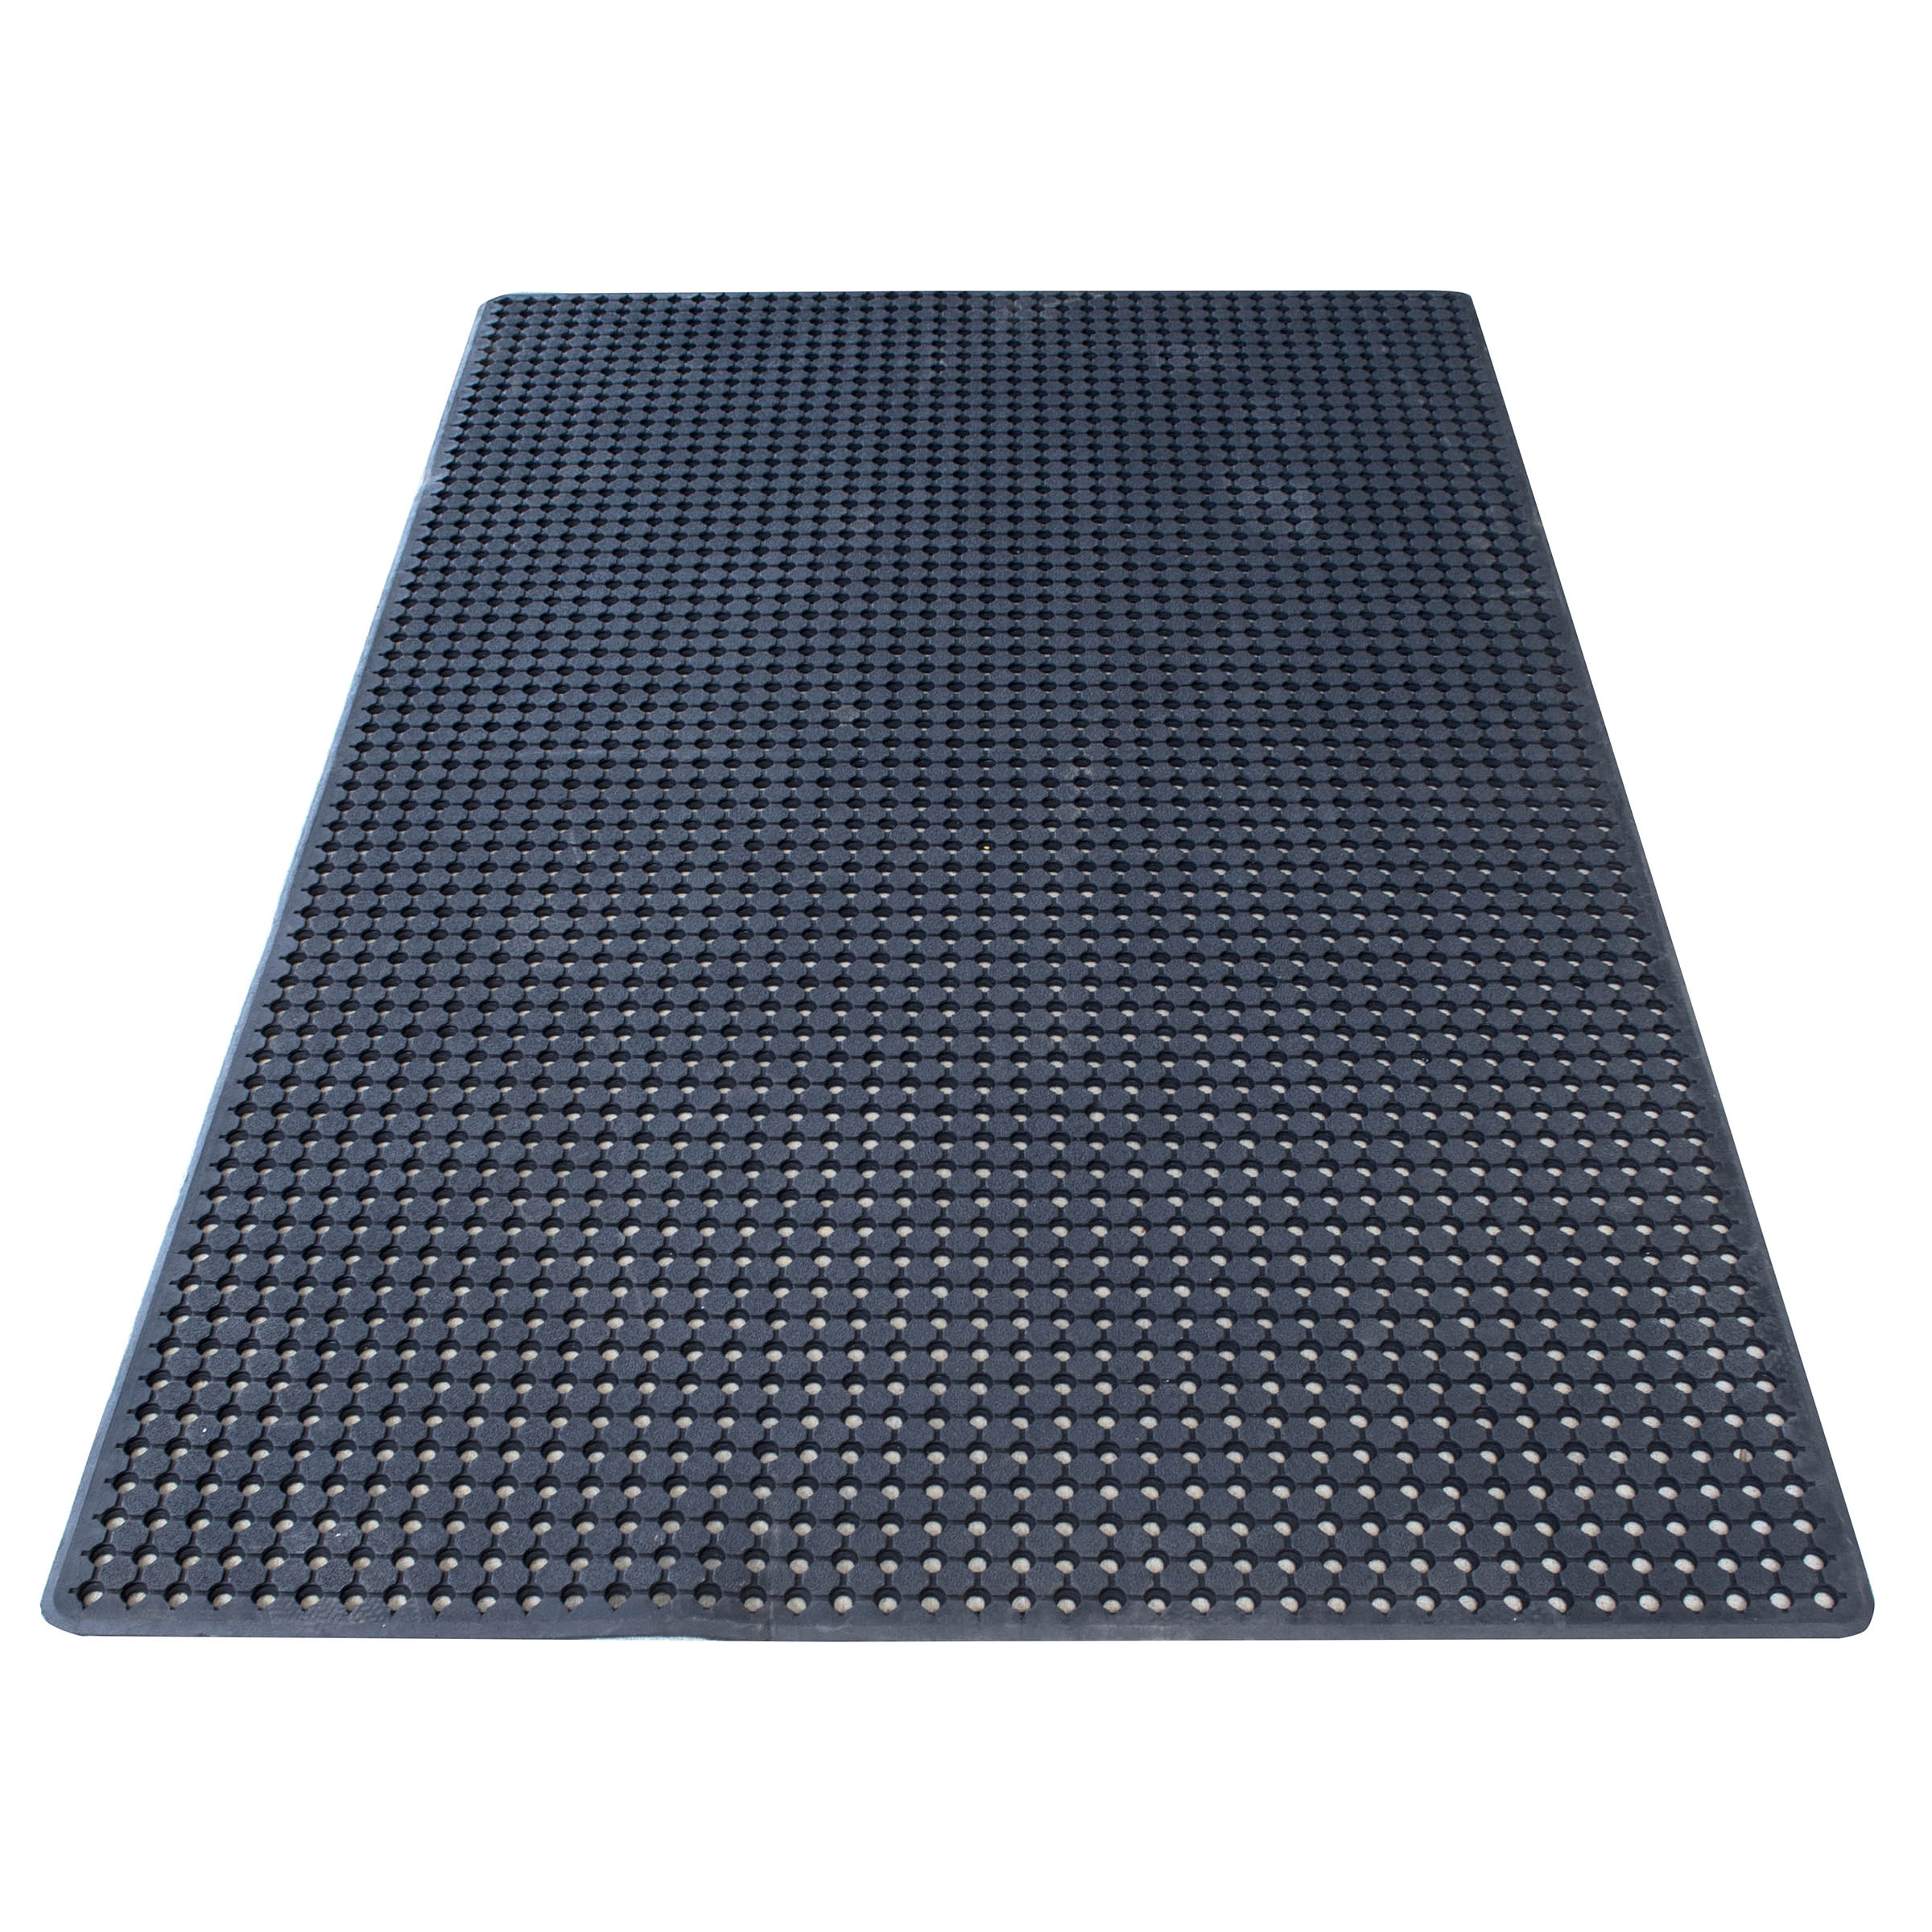 4 x 6 Foot Truck Bed Utilty Mat